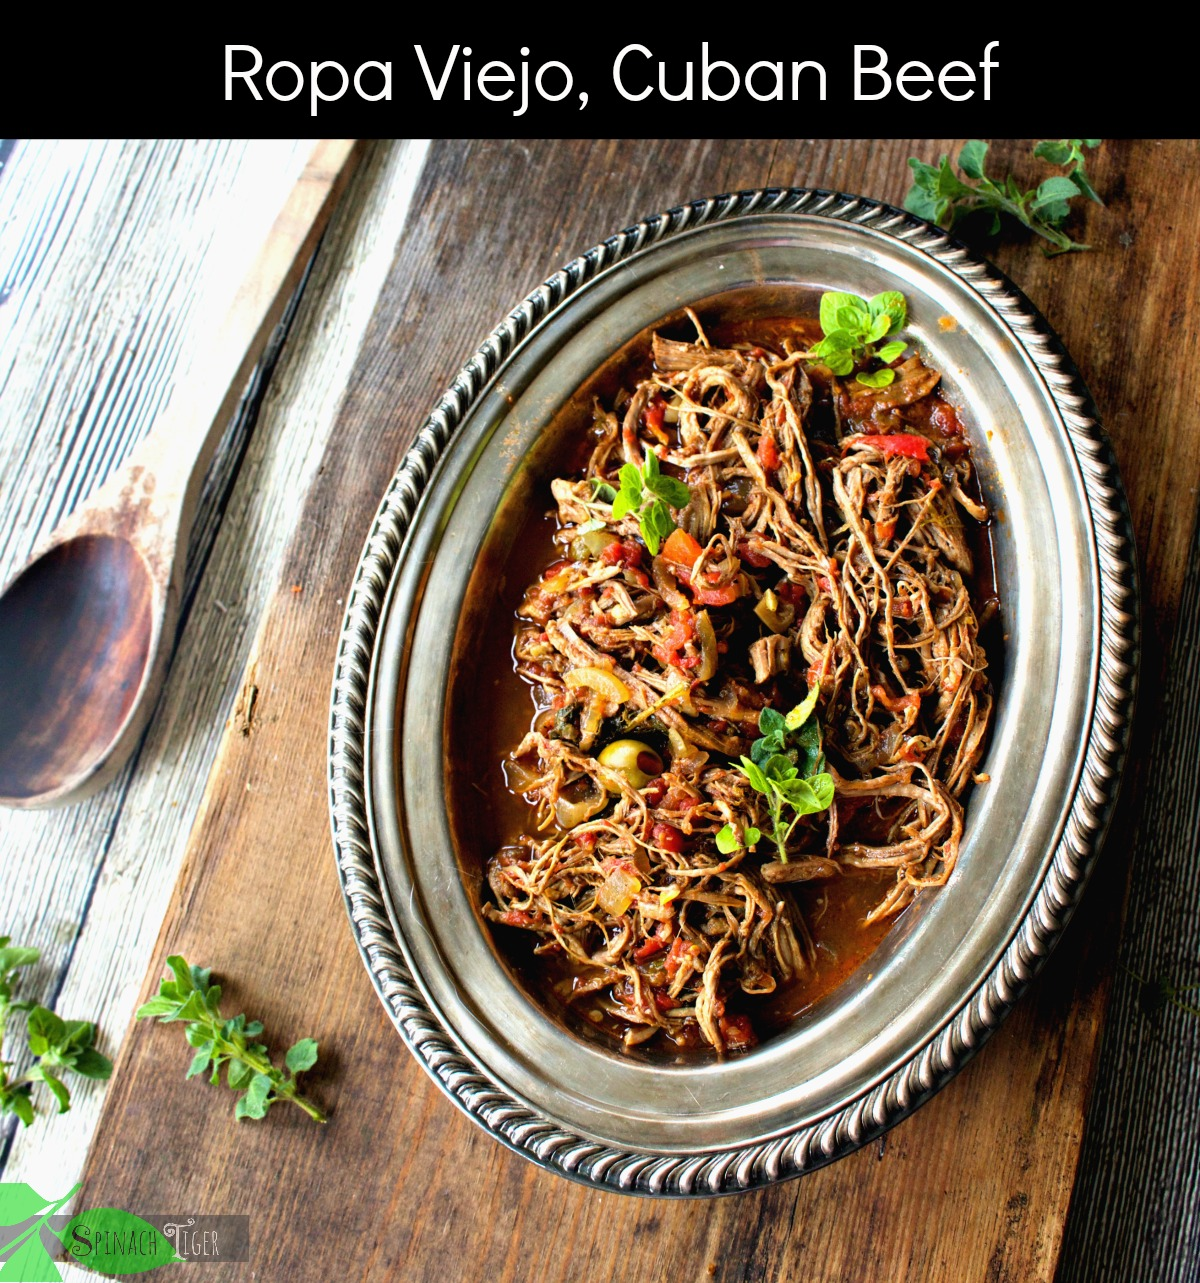 How to Make Ropa Viejo, Cuban Shredded Beef from Spinach Tiger